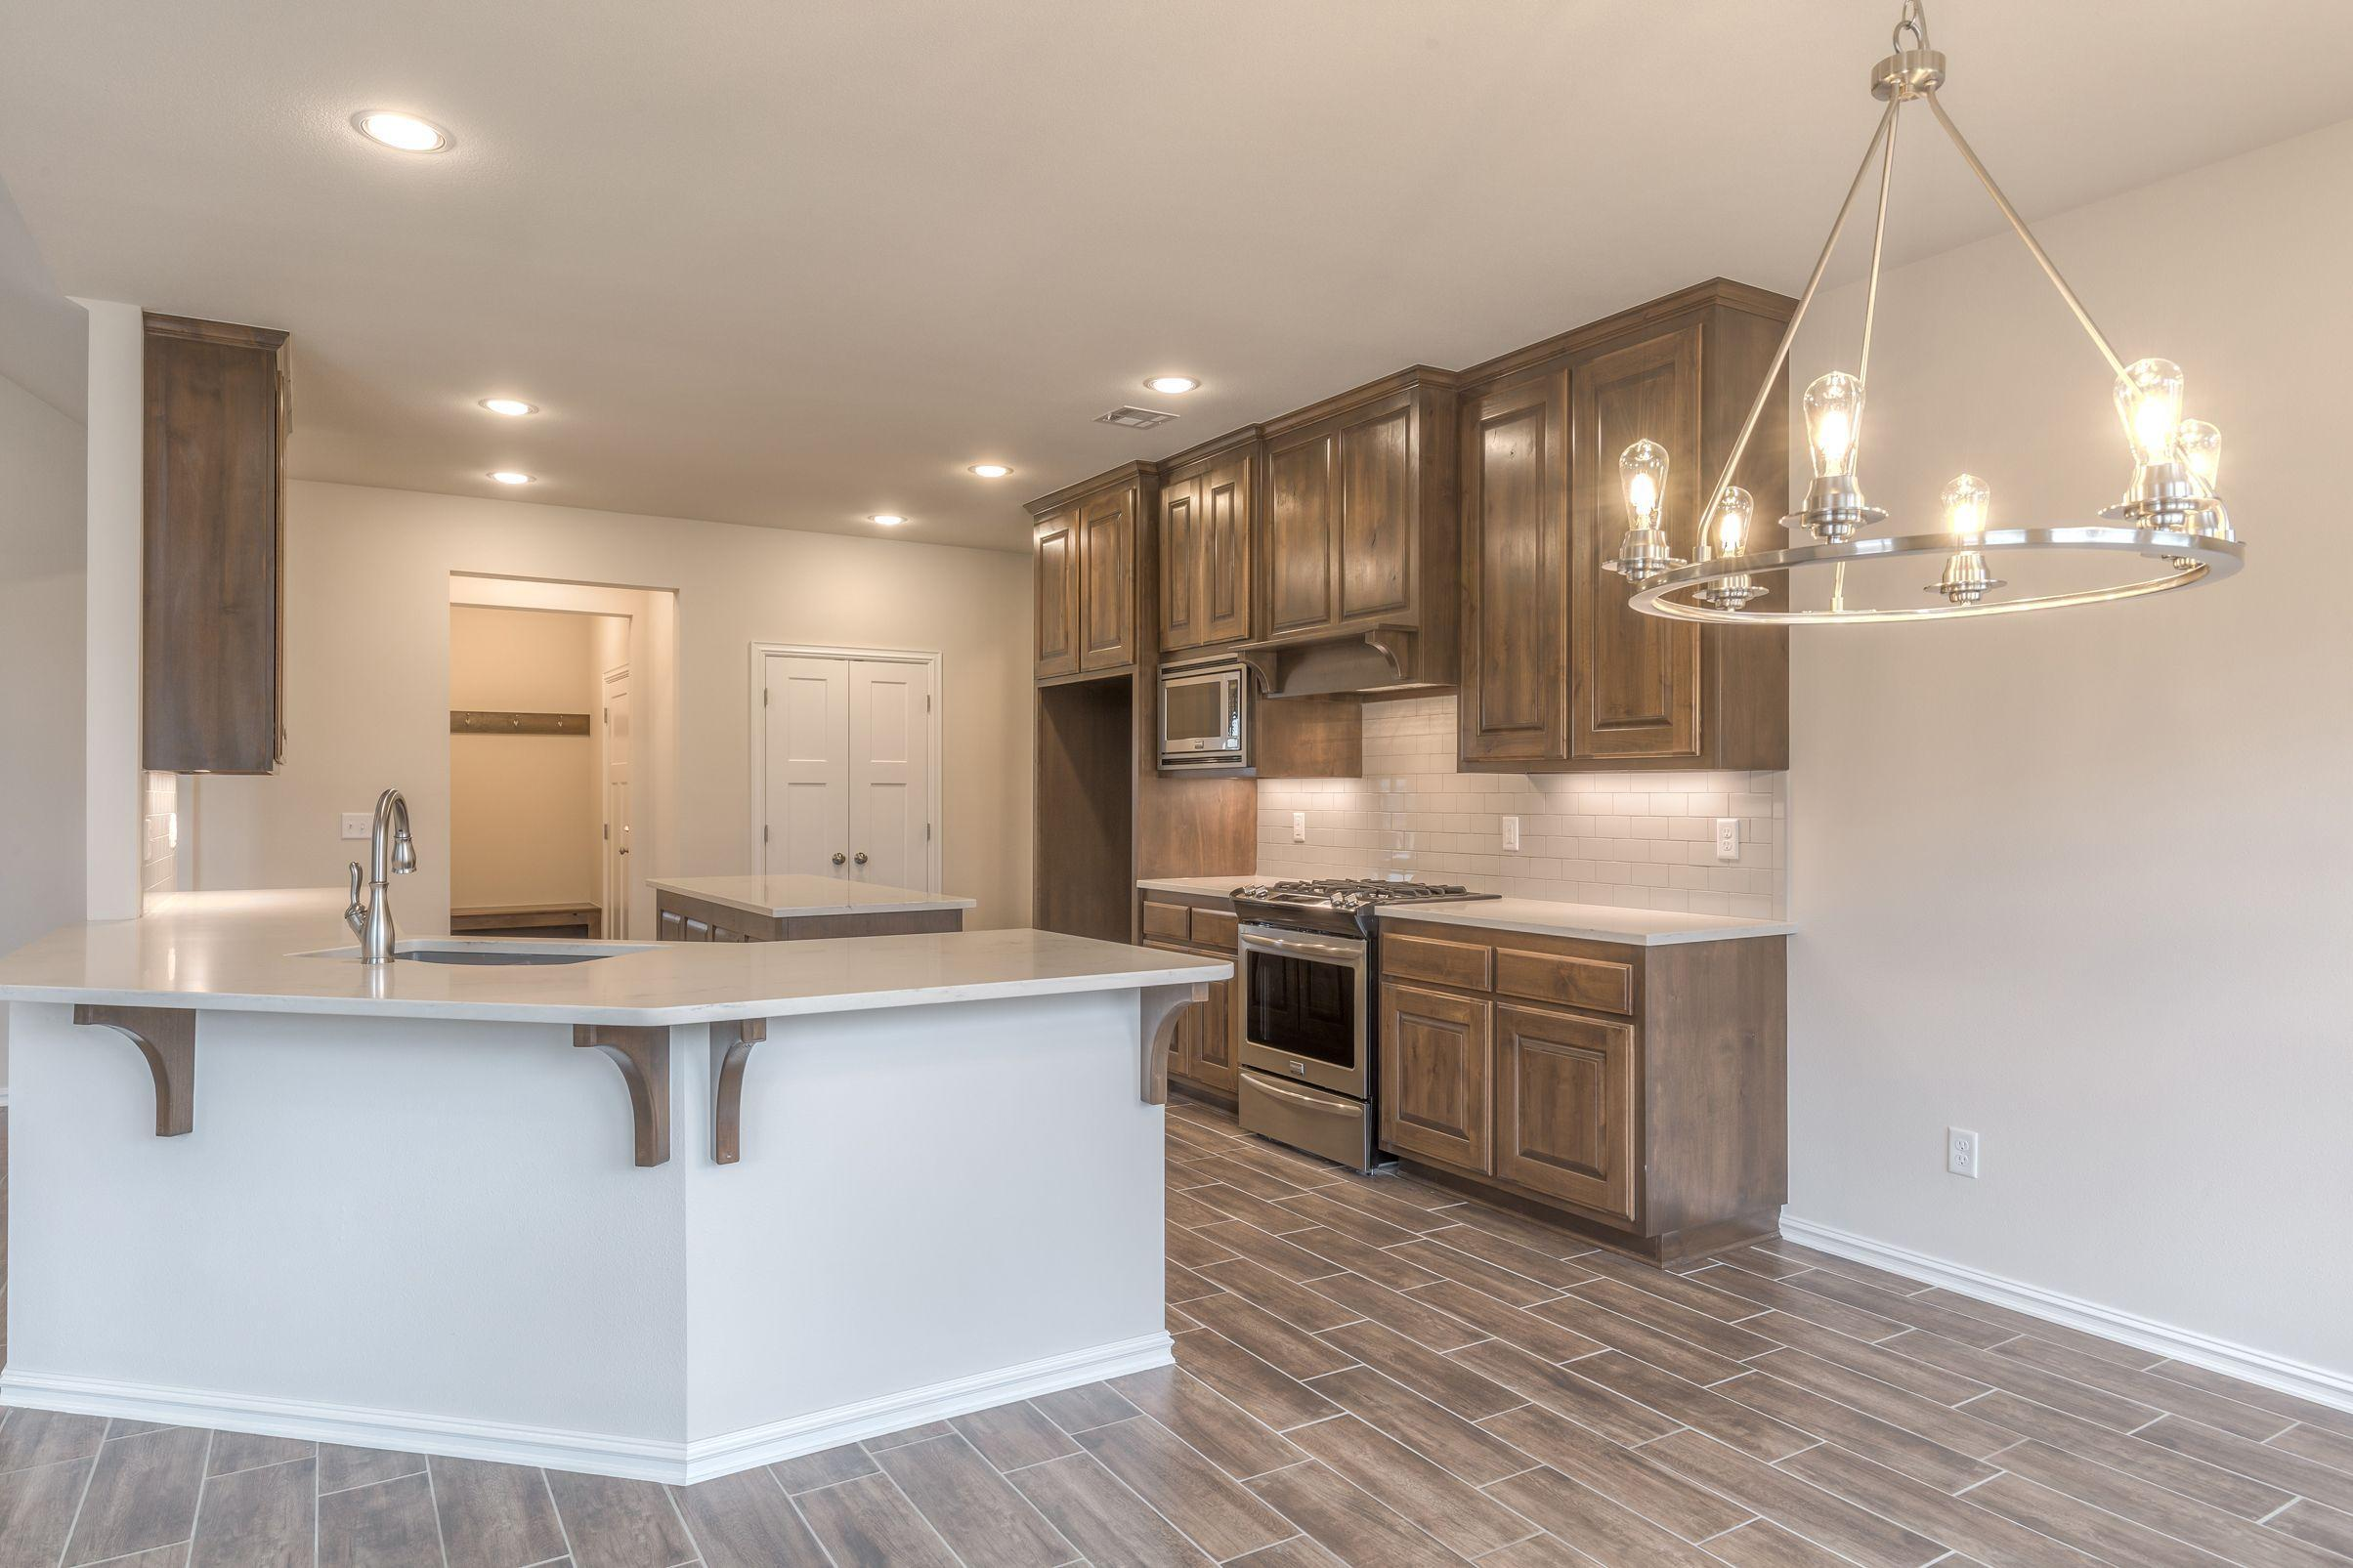 Kitchen featured in the Breckenridge II By Concept Builders, Inc in Tulsa, OK